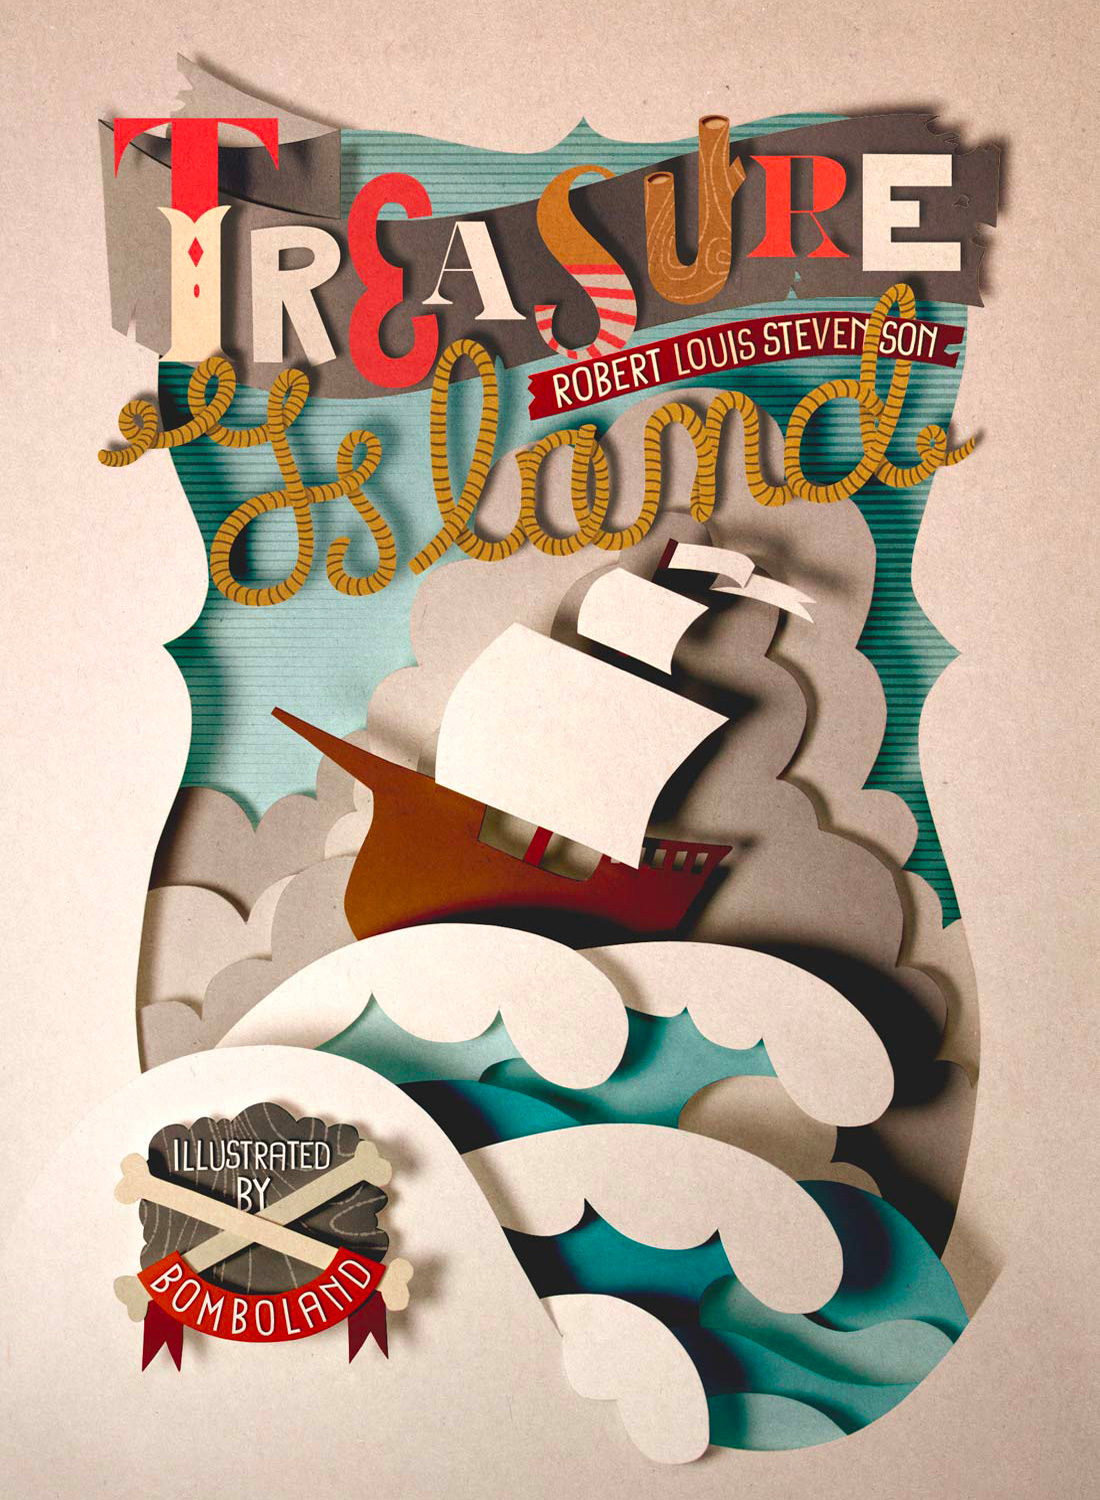 Cover papercut illustration. Treasure Island cover illustration. Lettering illustration. Papecut typo. Paprcut lettering. Cut out illustration.